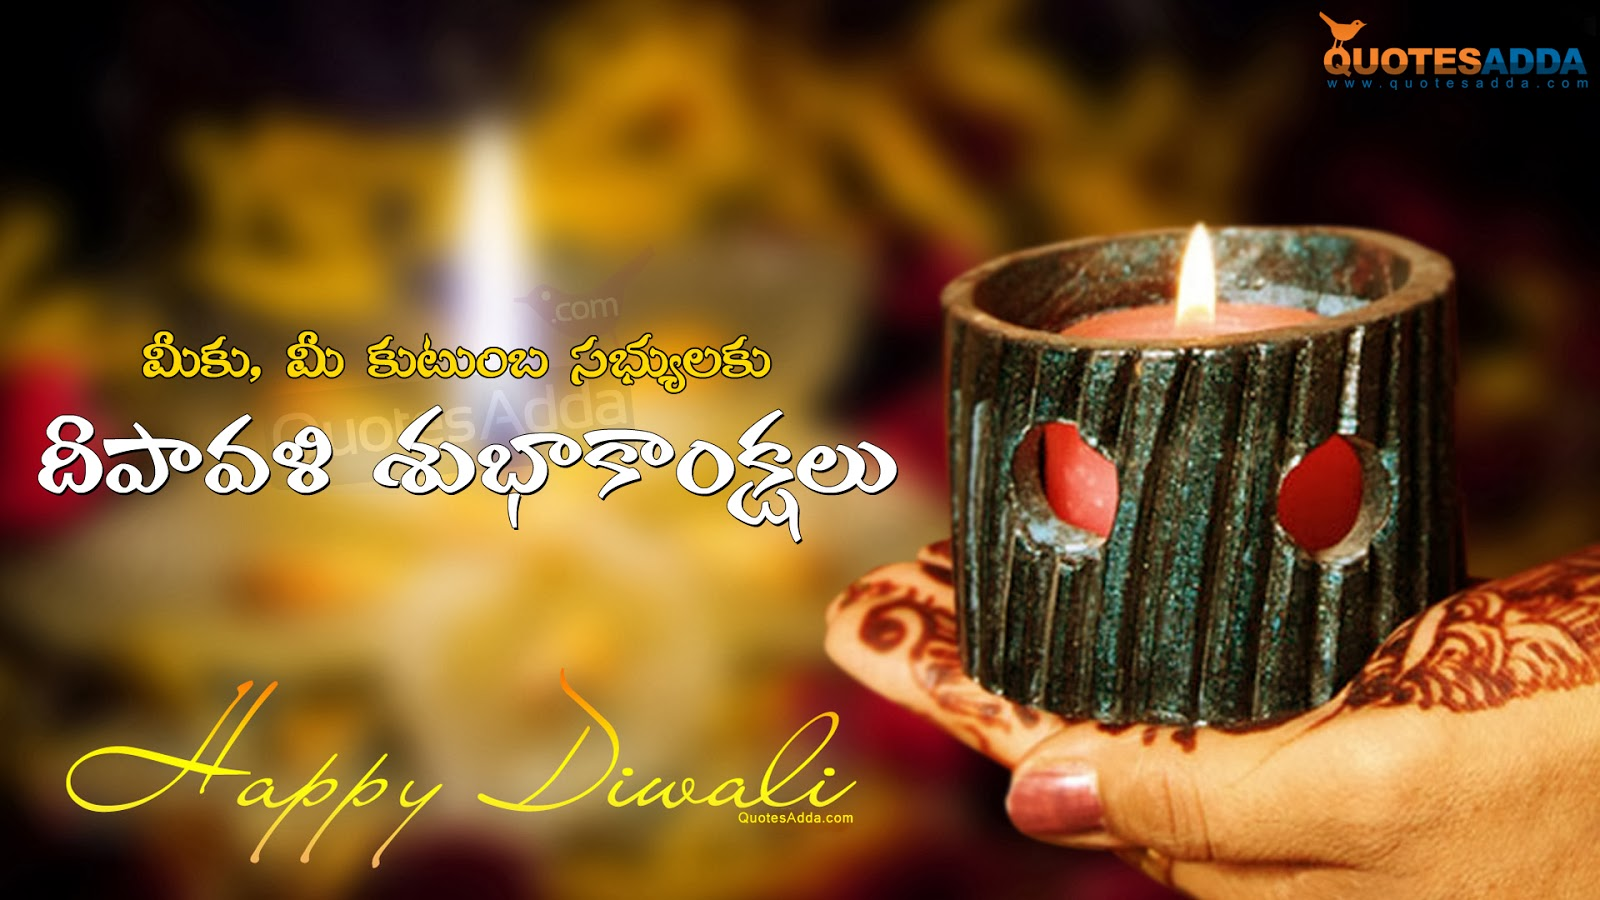 Happy Deepawali Wishes Messages in Telugu